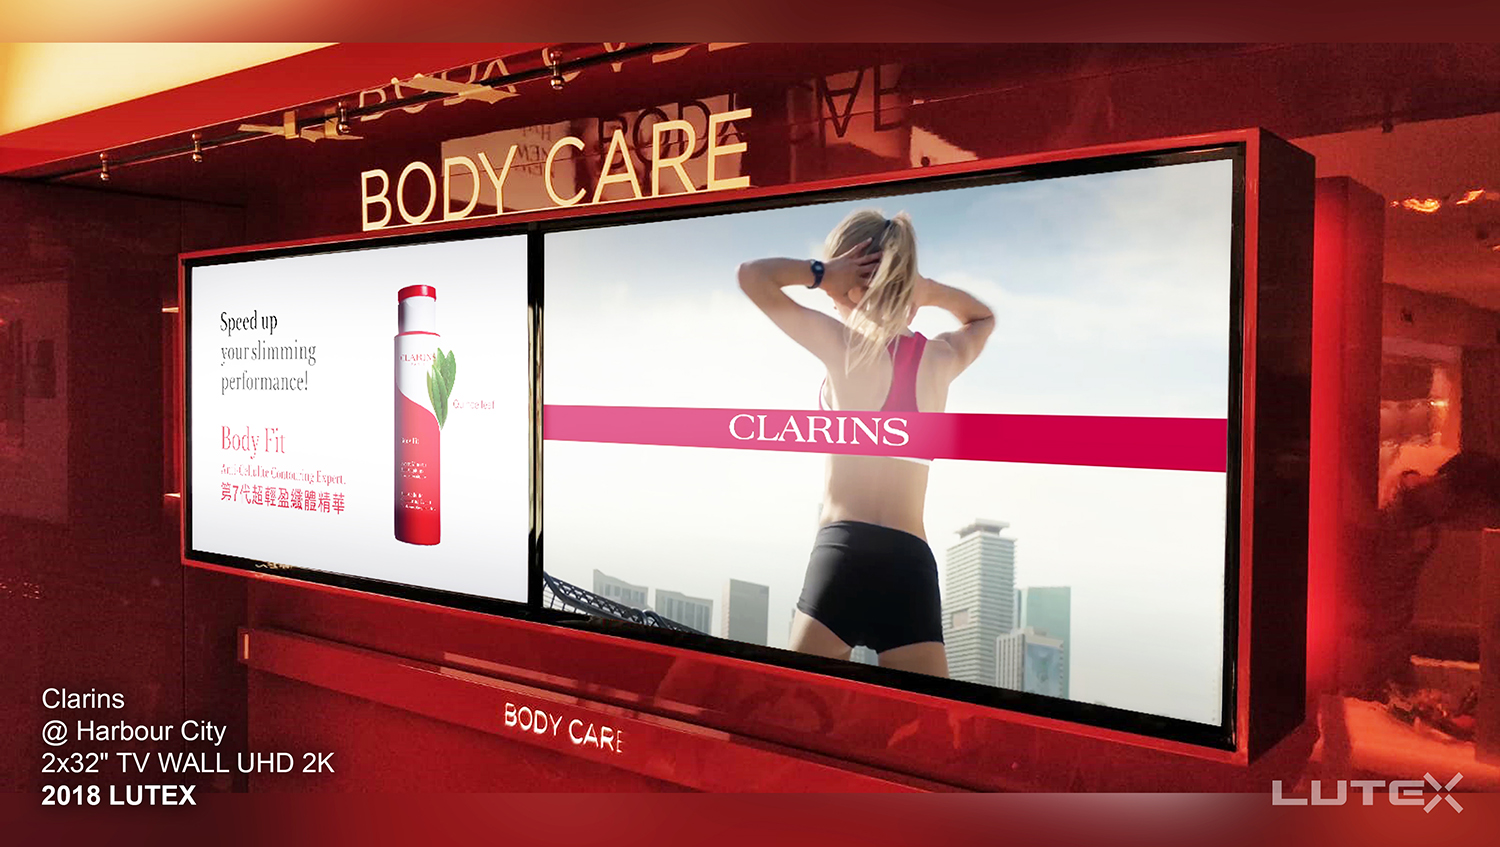 Clarins_2x32 TV WALL UHD 2K